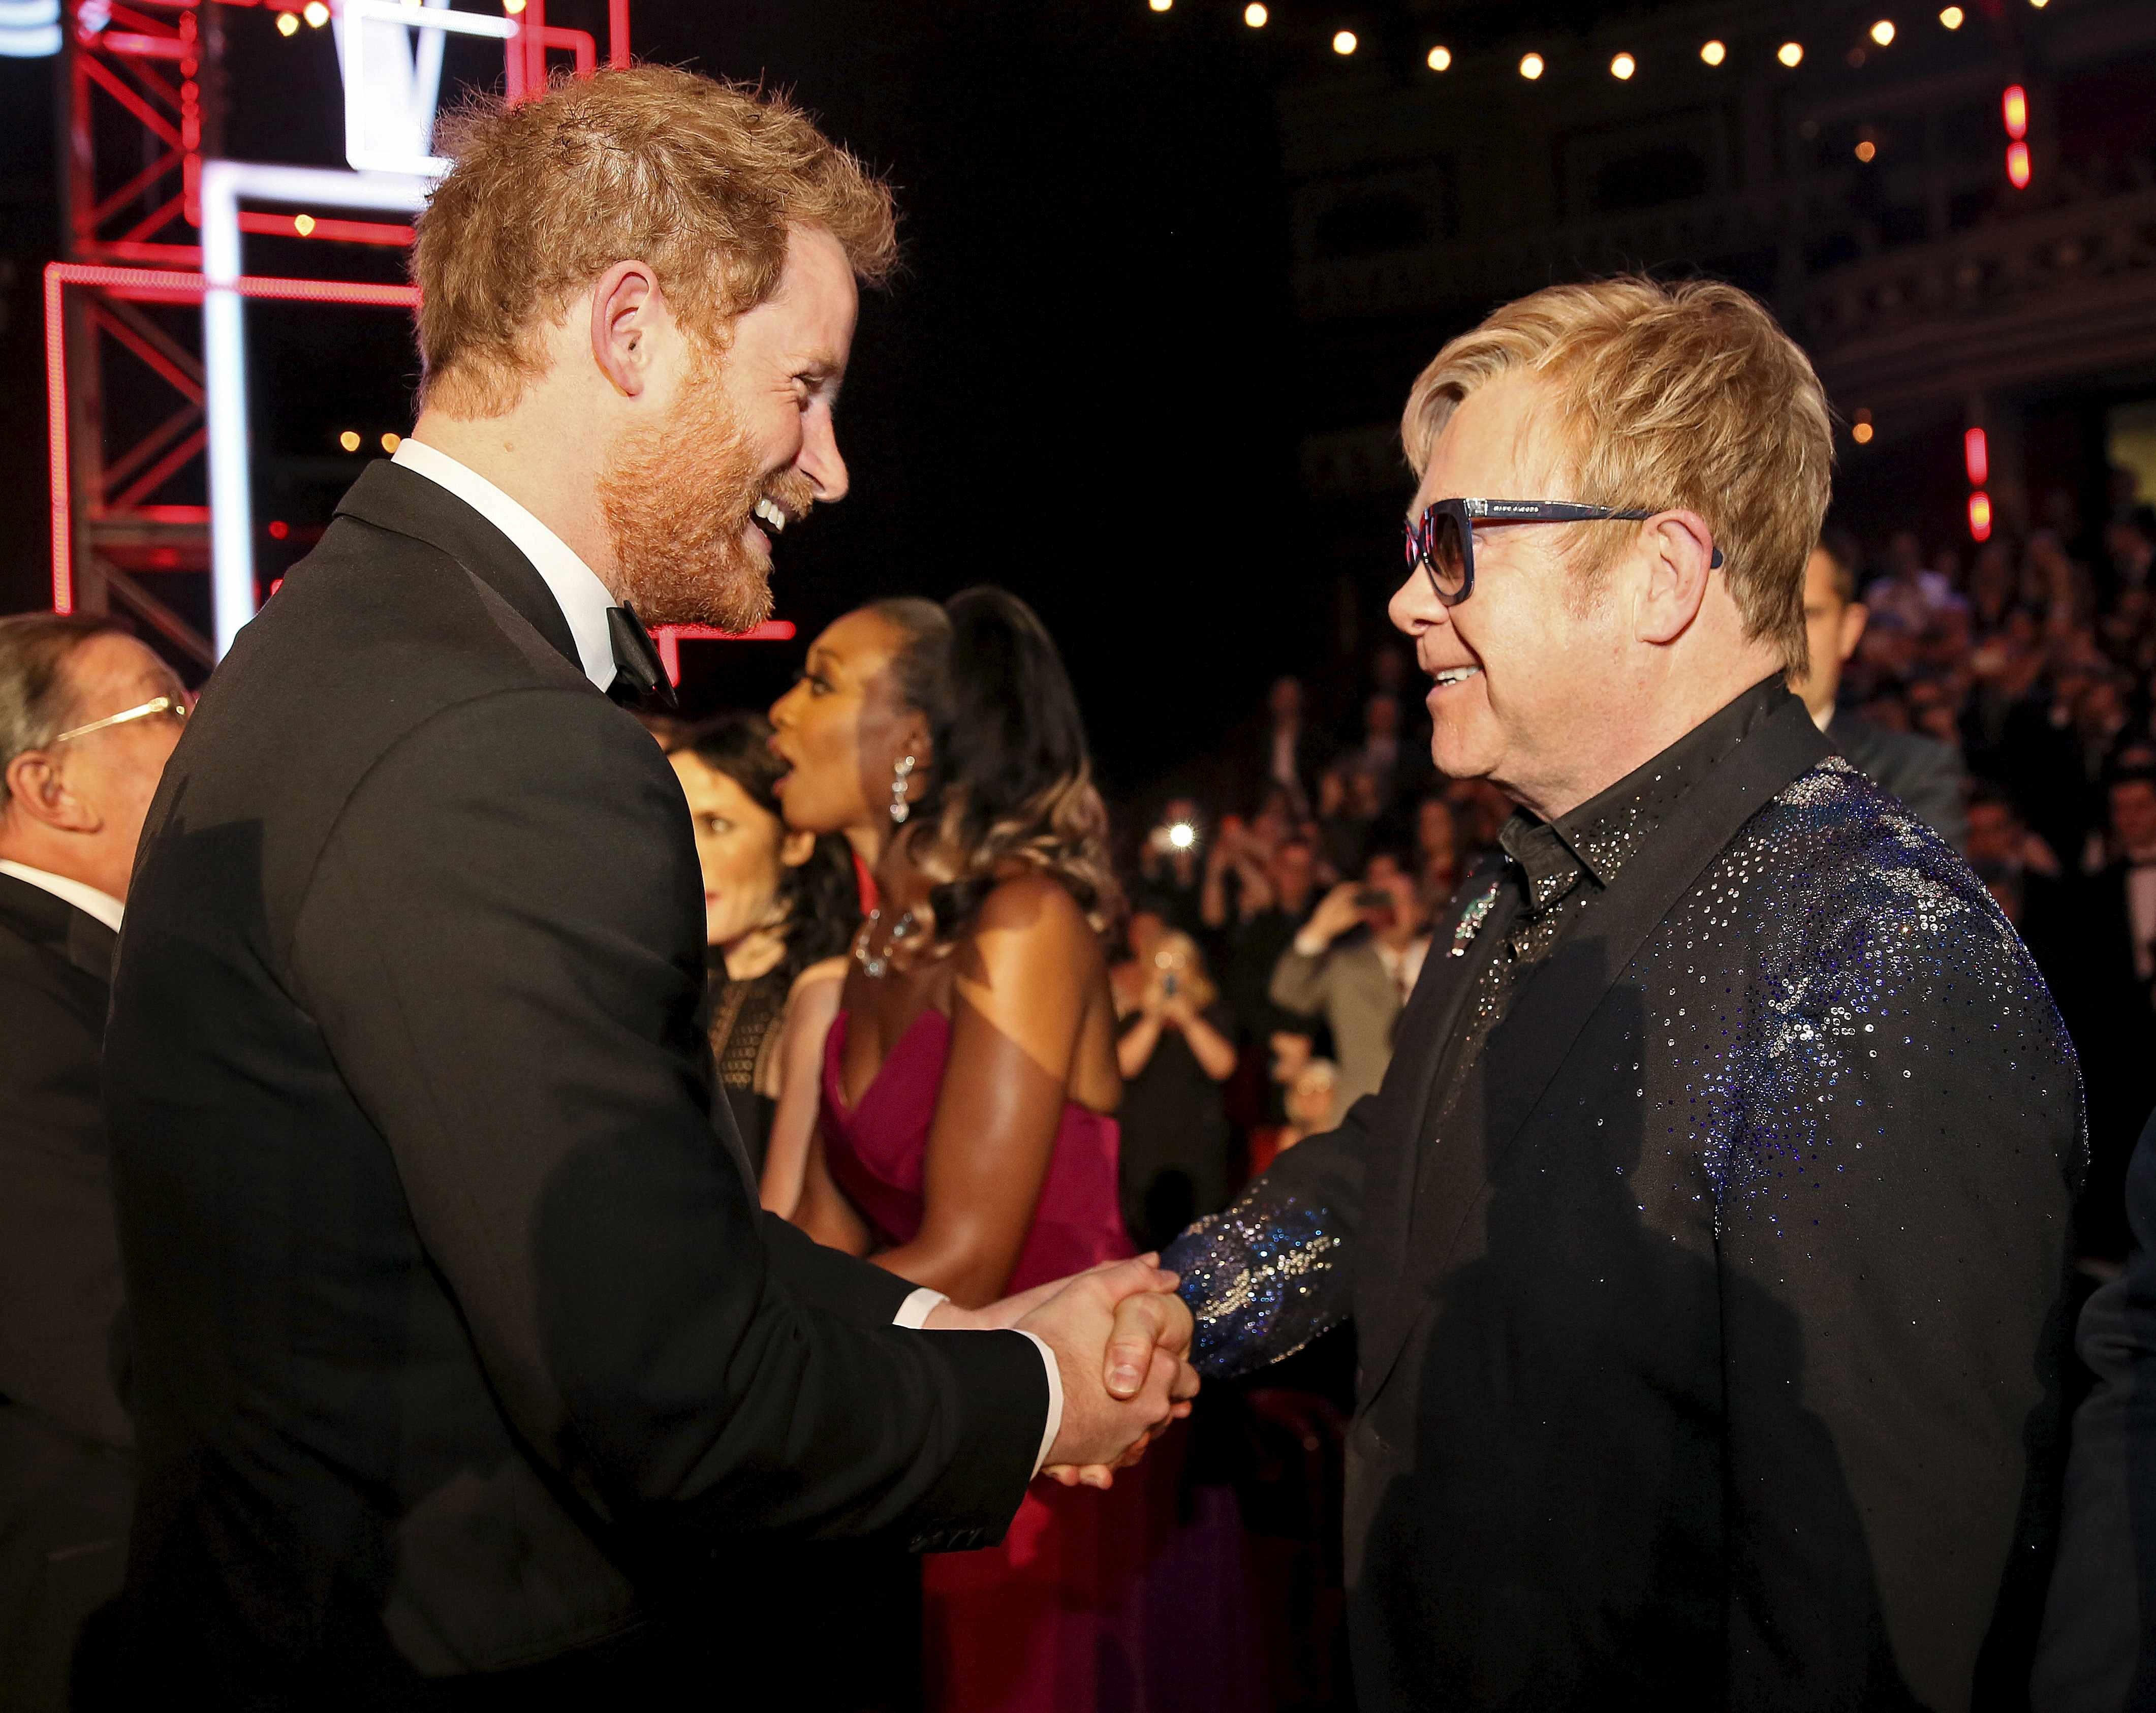 Prince Harry and Sir Elton John attend the Royal Variety Performance at Royal Albert Hall in London on Nov. 13, 2015.